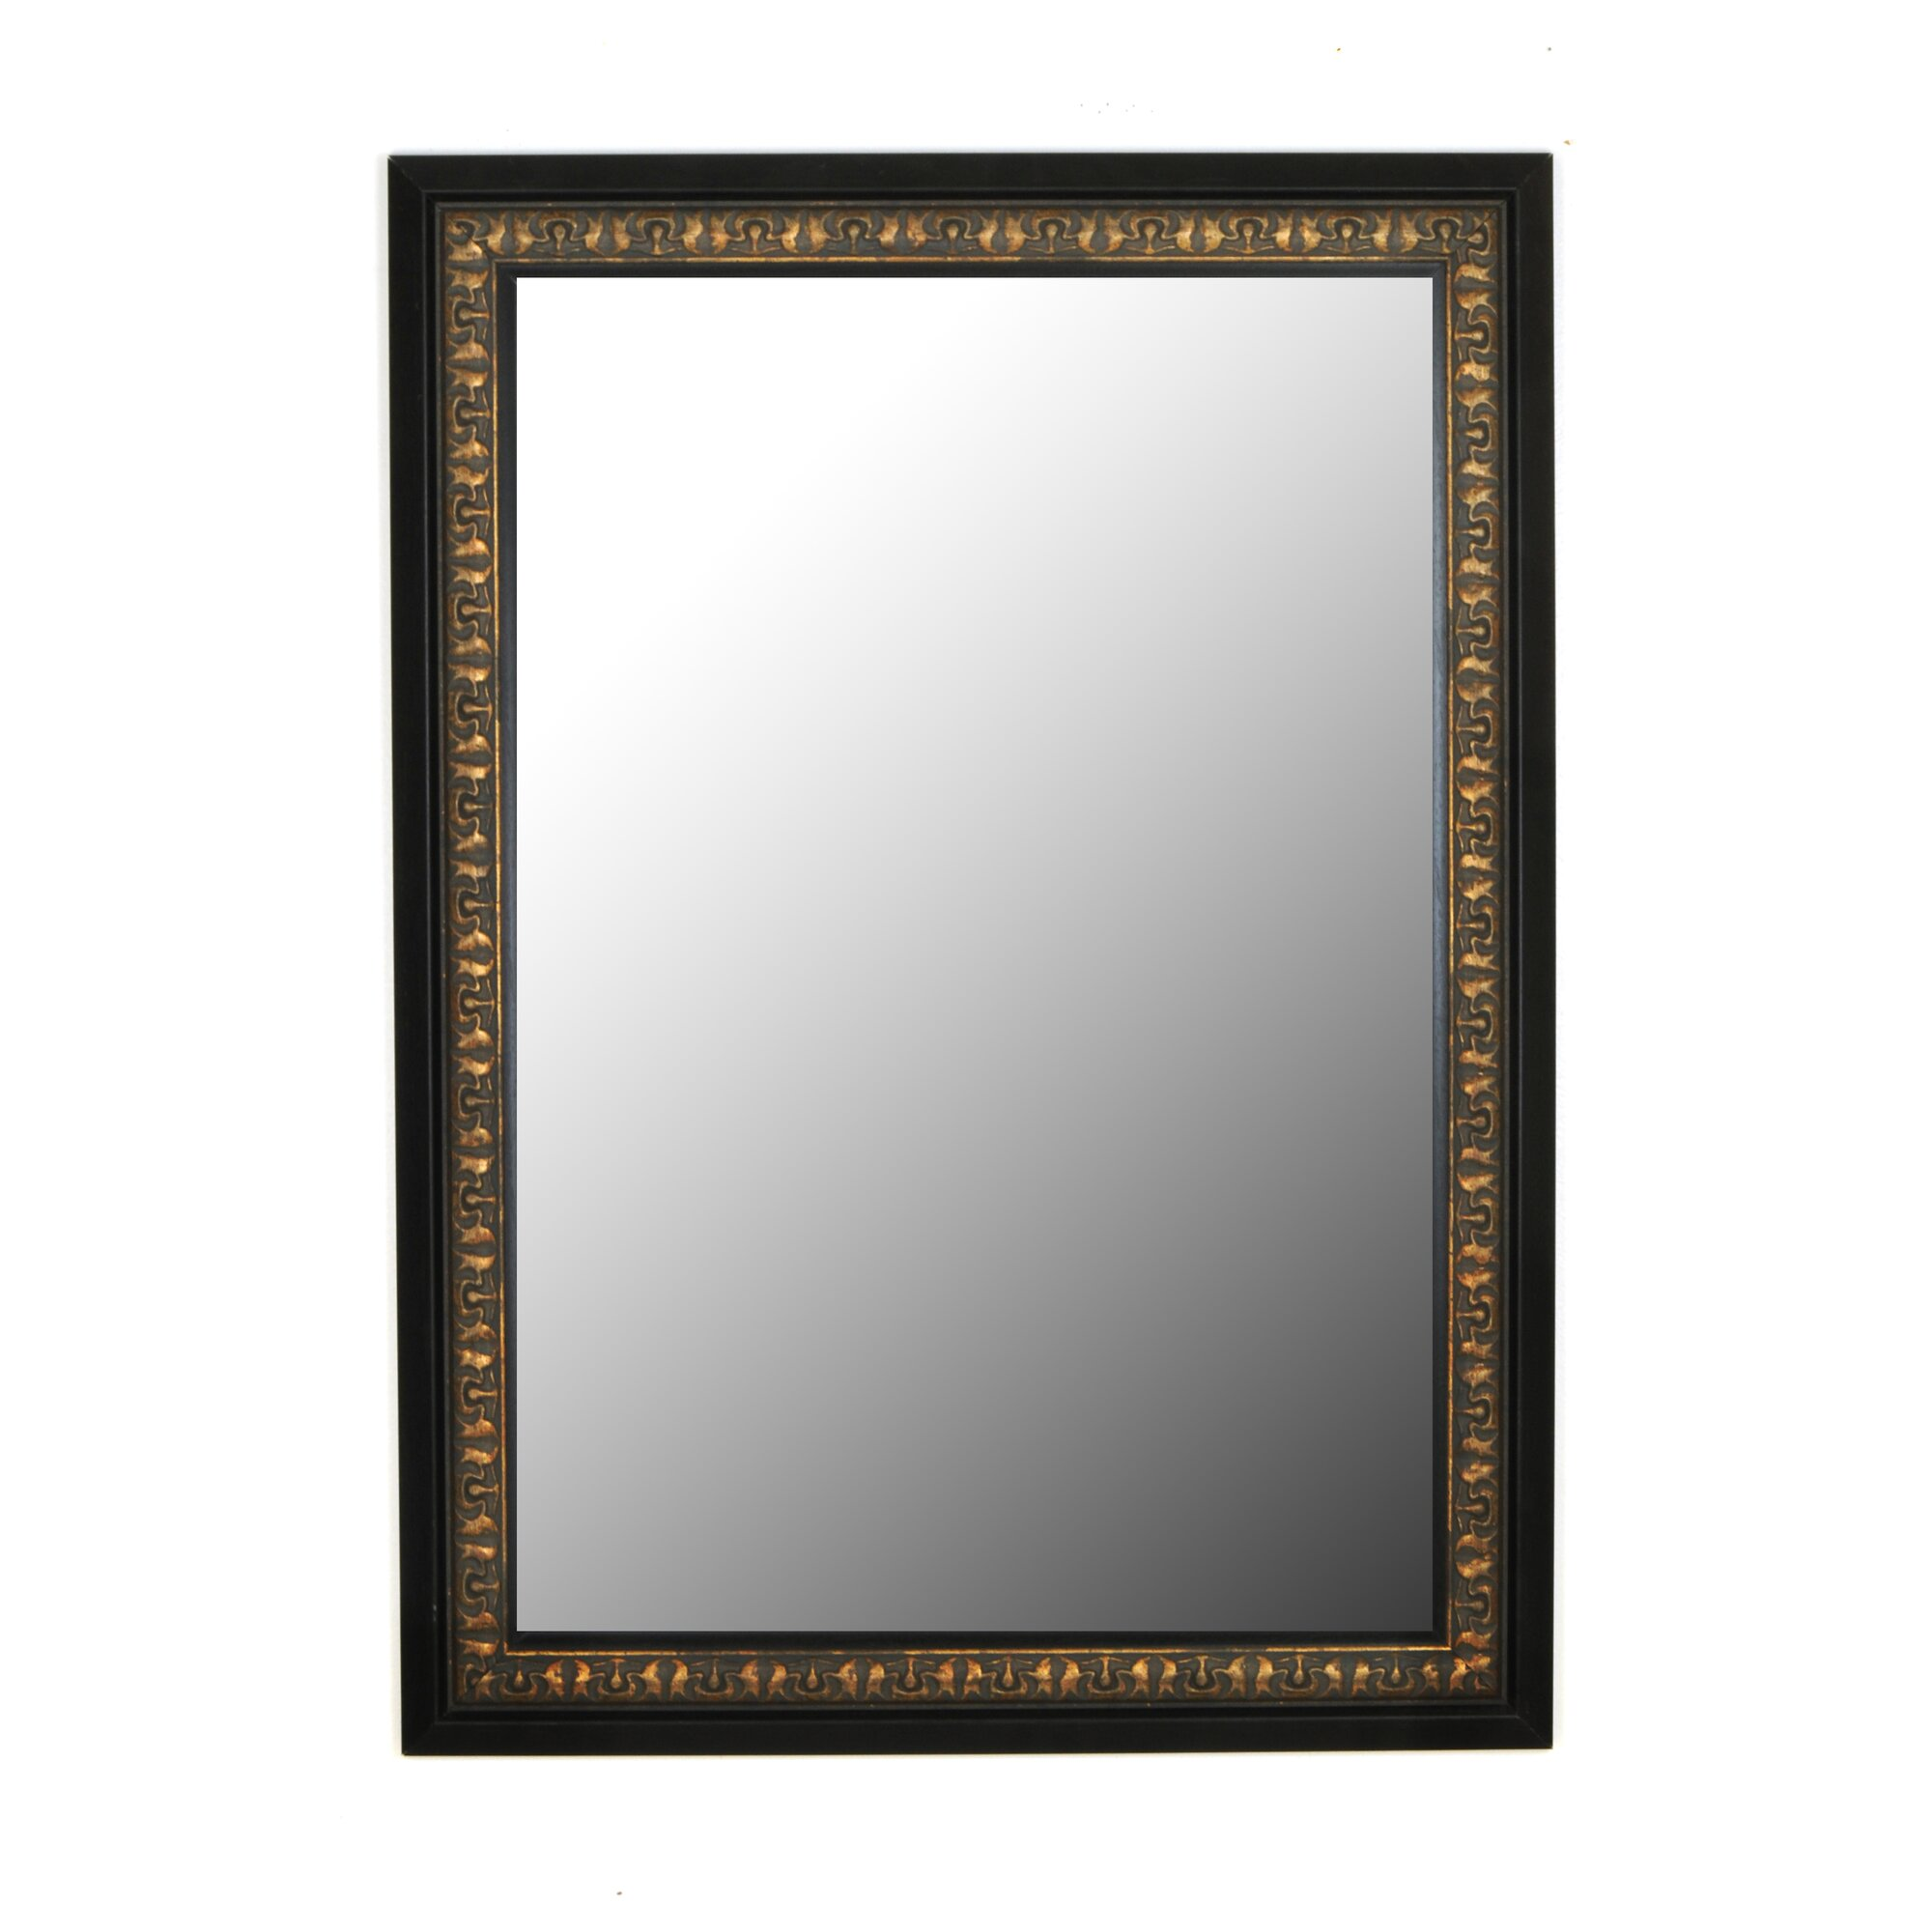 Second Look Mirrors Mumbai Vintage Copper Black Surround